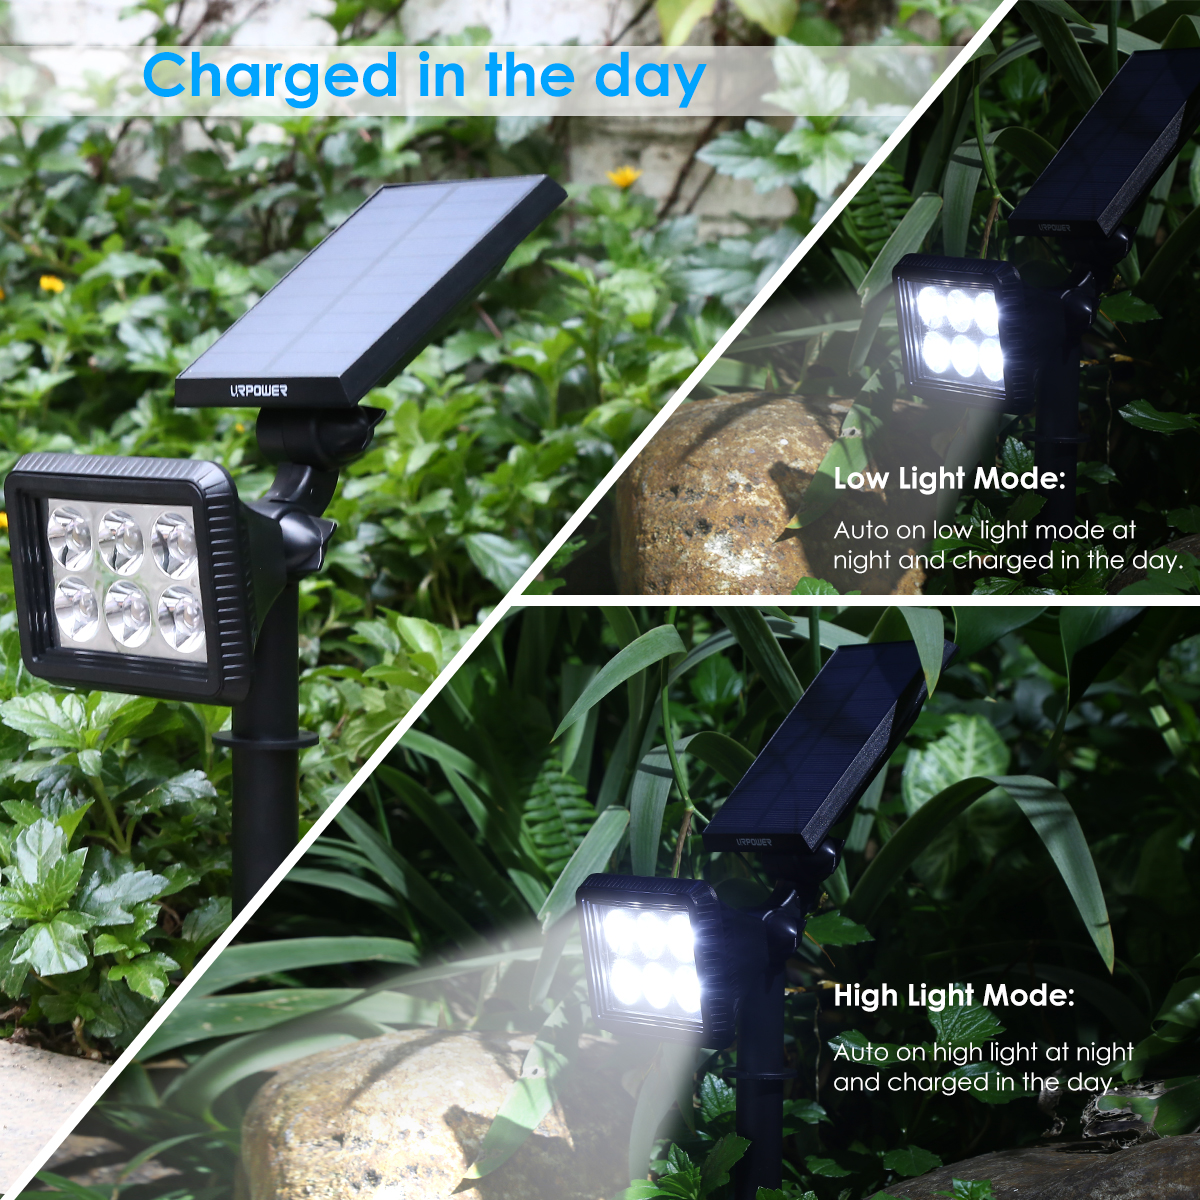 URPOWER Solar Lights Outdoor, Upgraded 2 Modes Solar Lights 2-in-1 Waterproof Solar Spotlight Auto On/Off Solar Wall Lights Pathway Lights Landscape Lighting for Yard Garden Pool- Cool White (4 Pack)